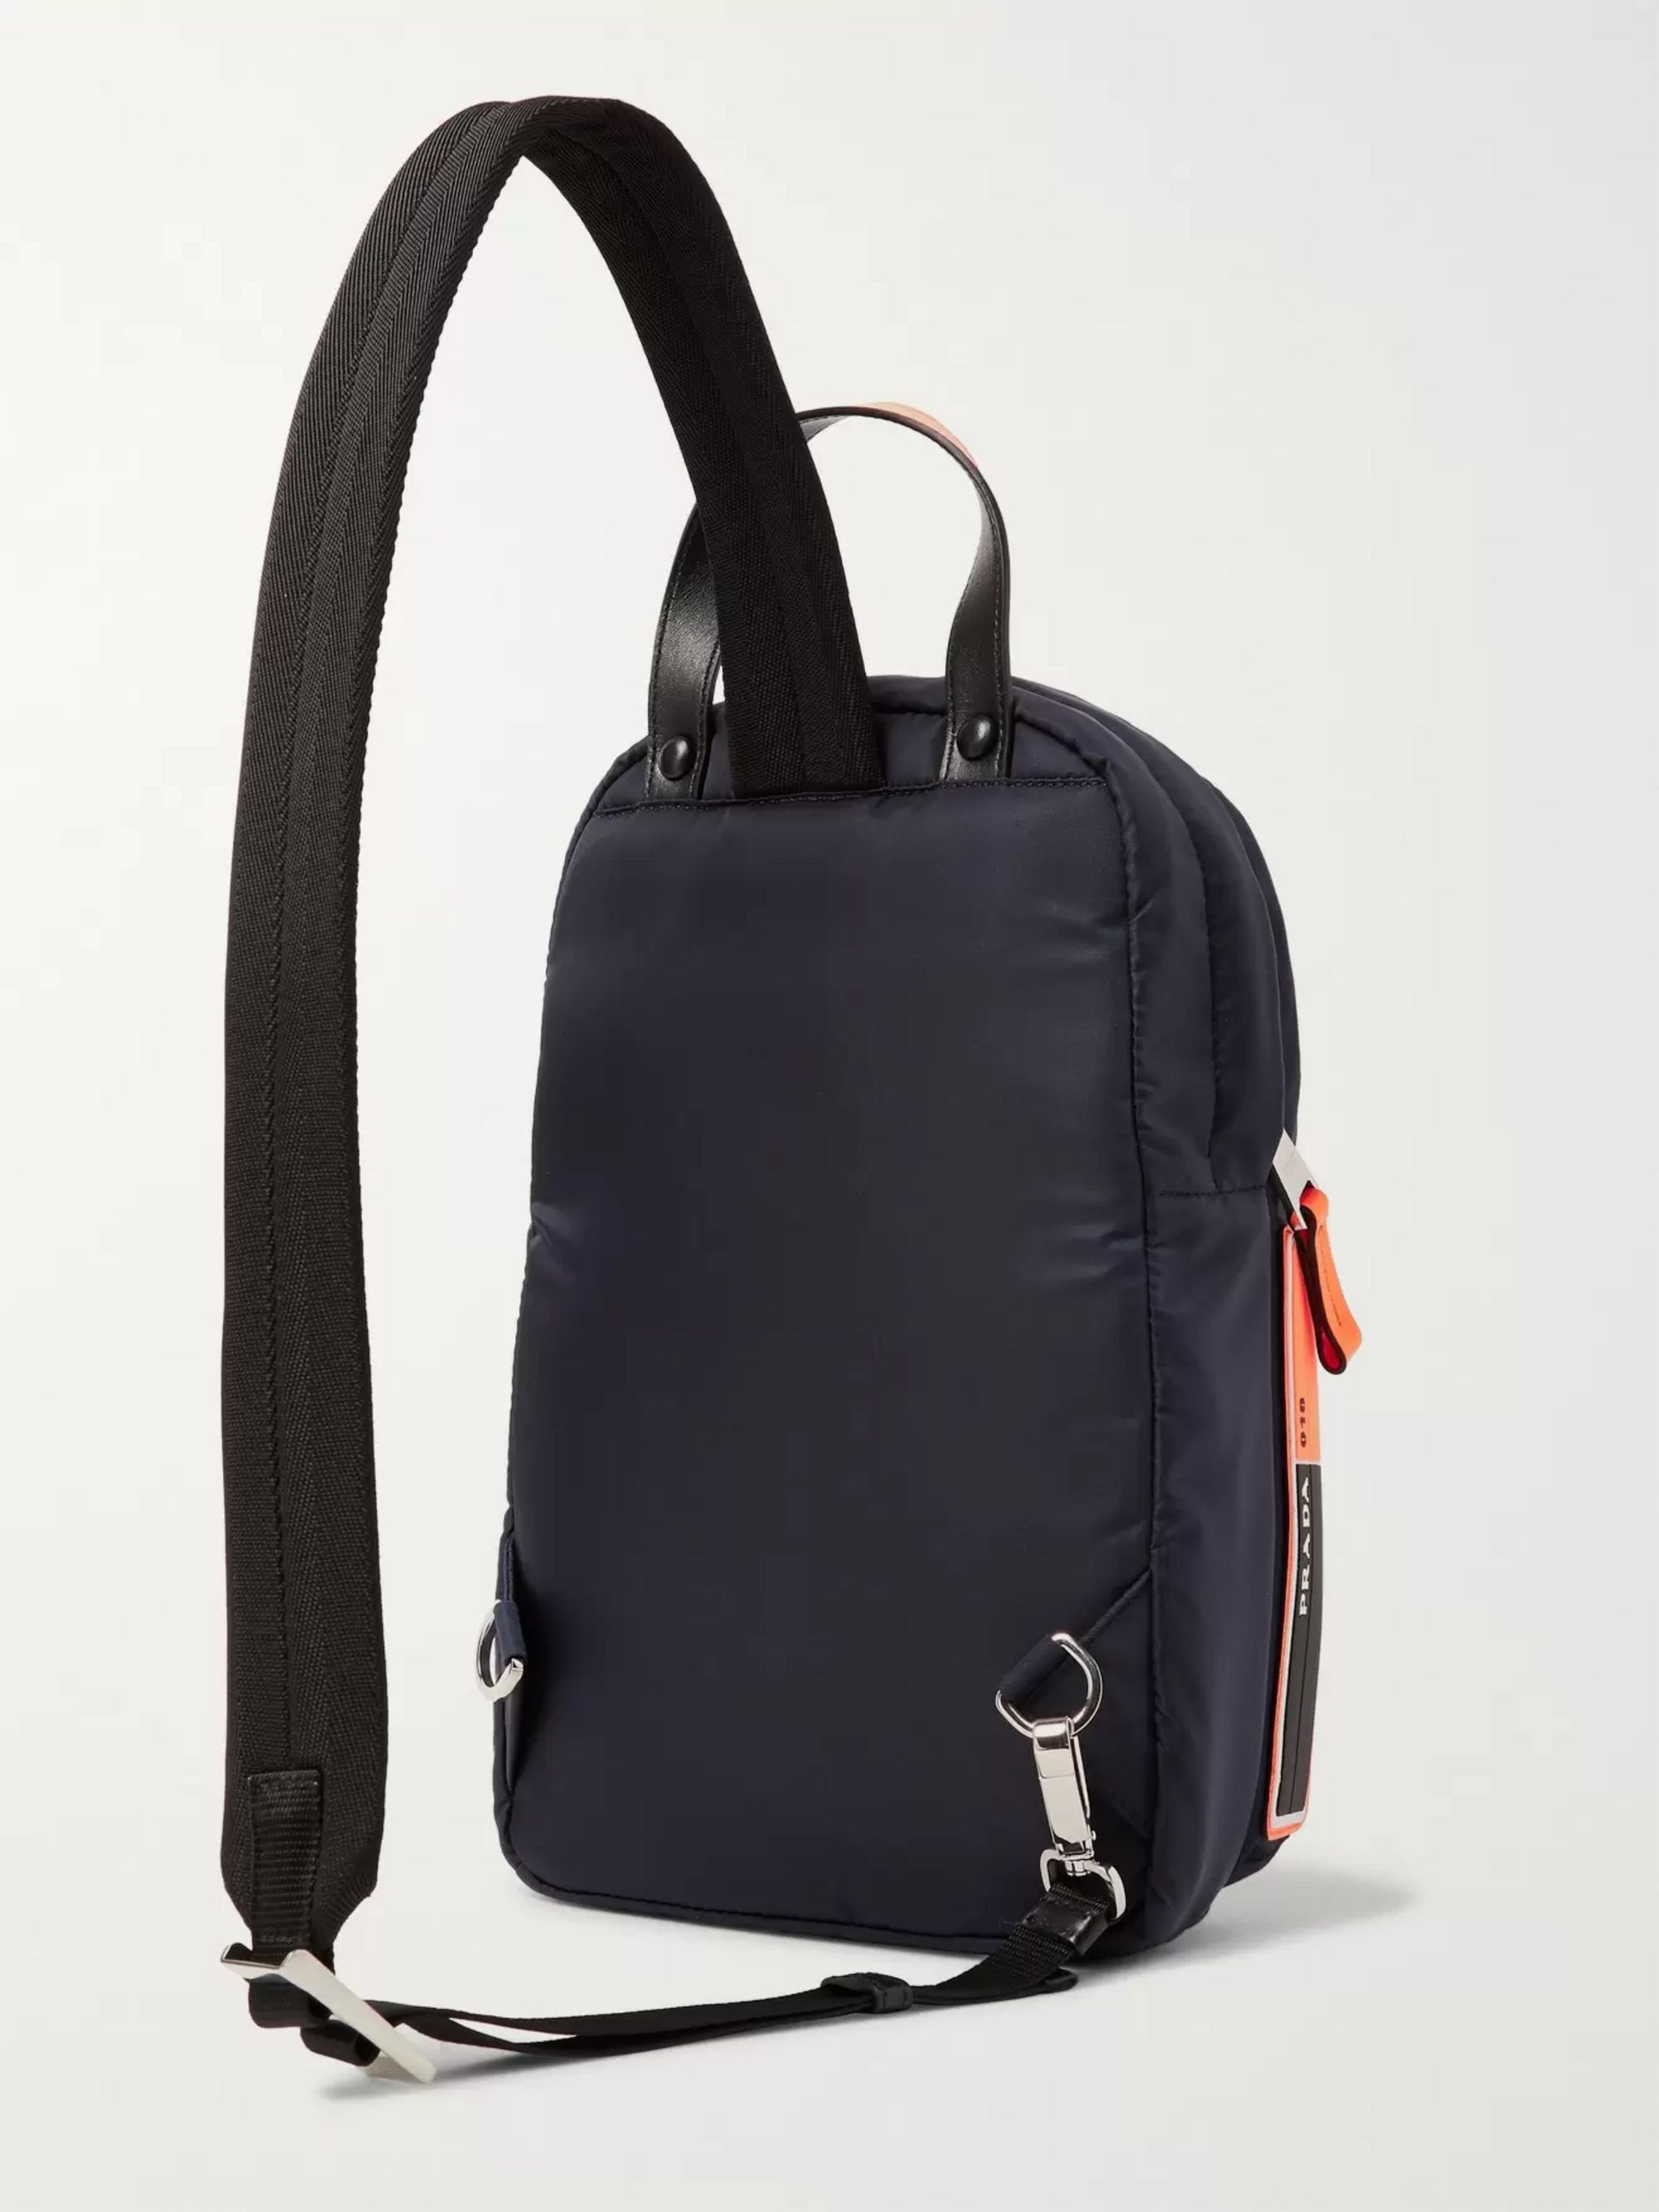 Prada Logo-Appliquéd Leather-Trimmed Nylon Backpack